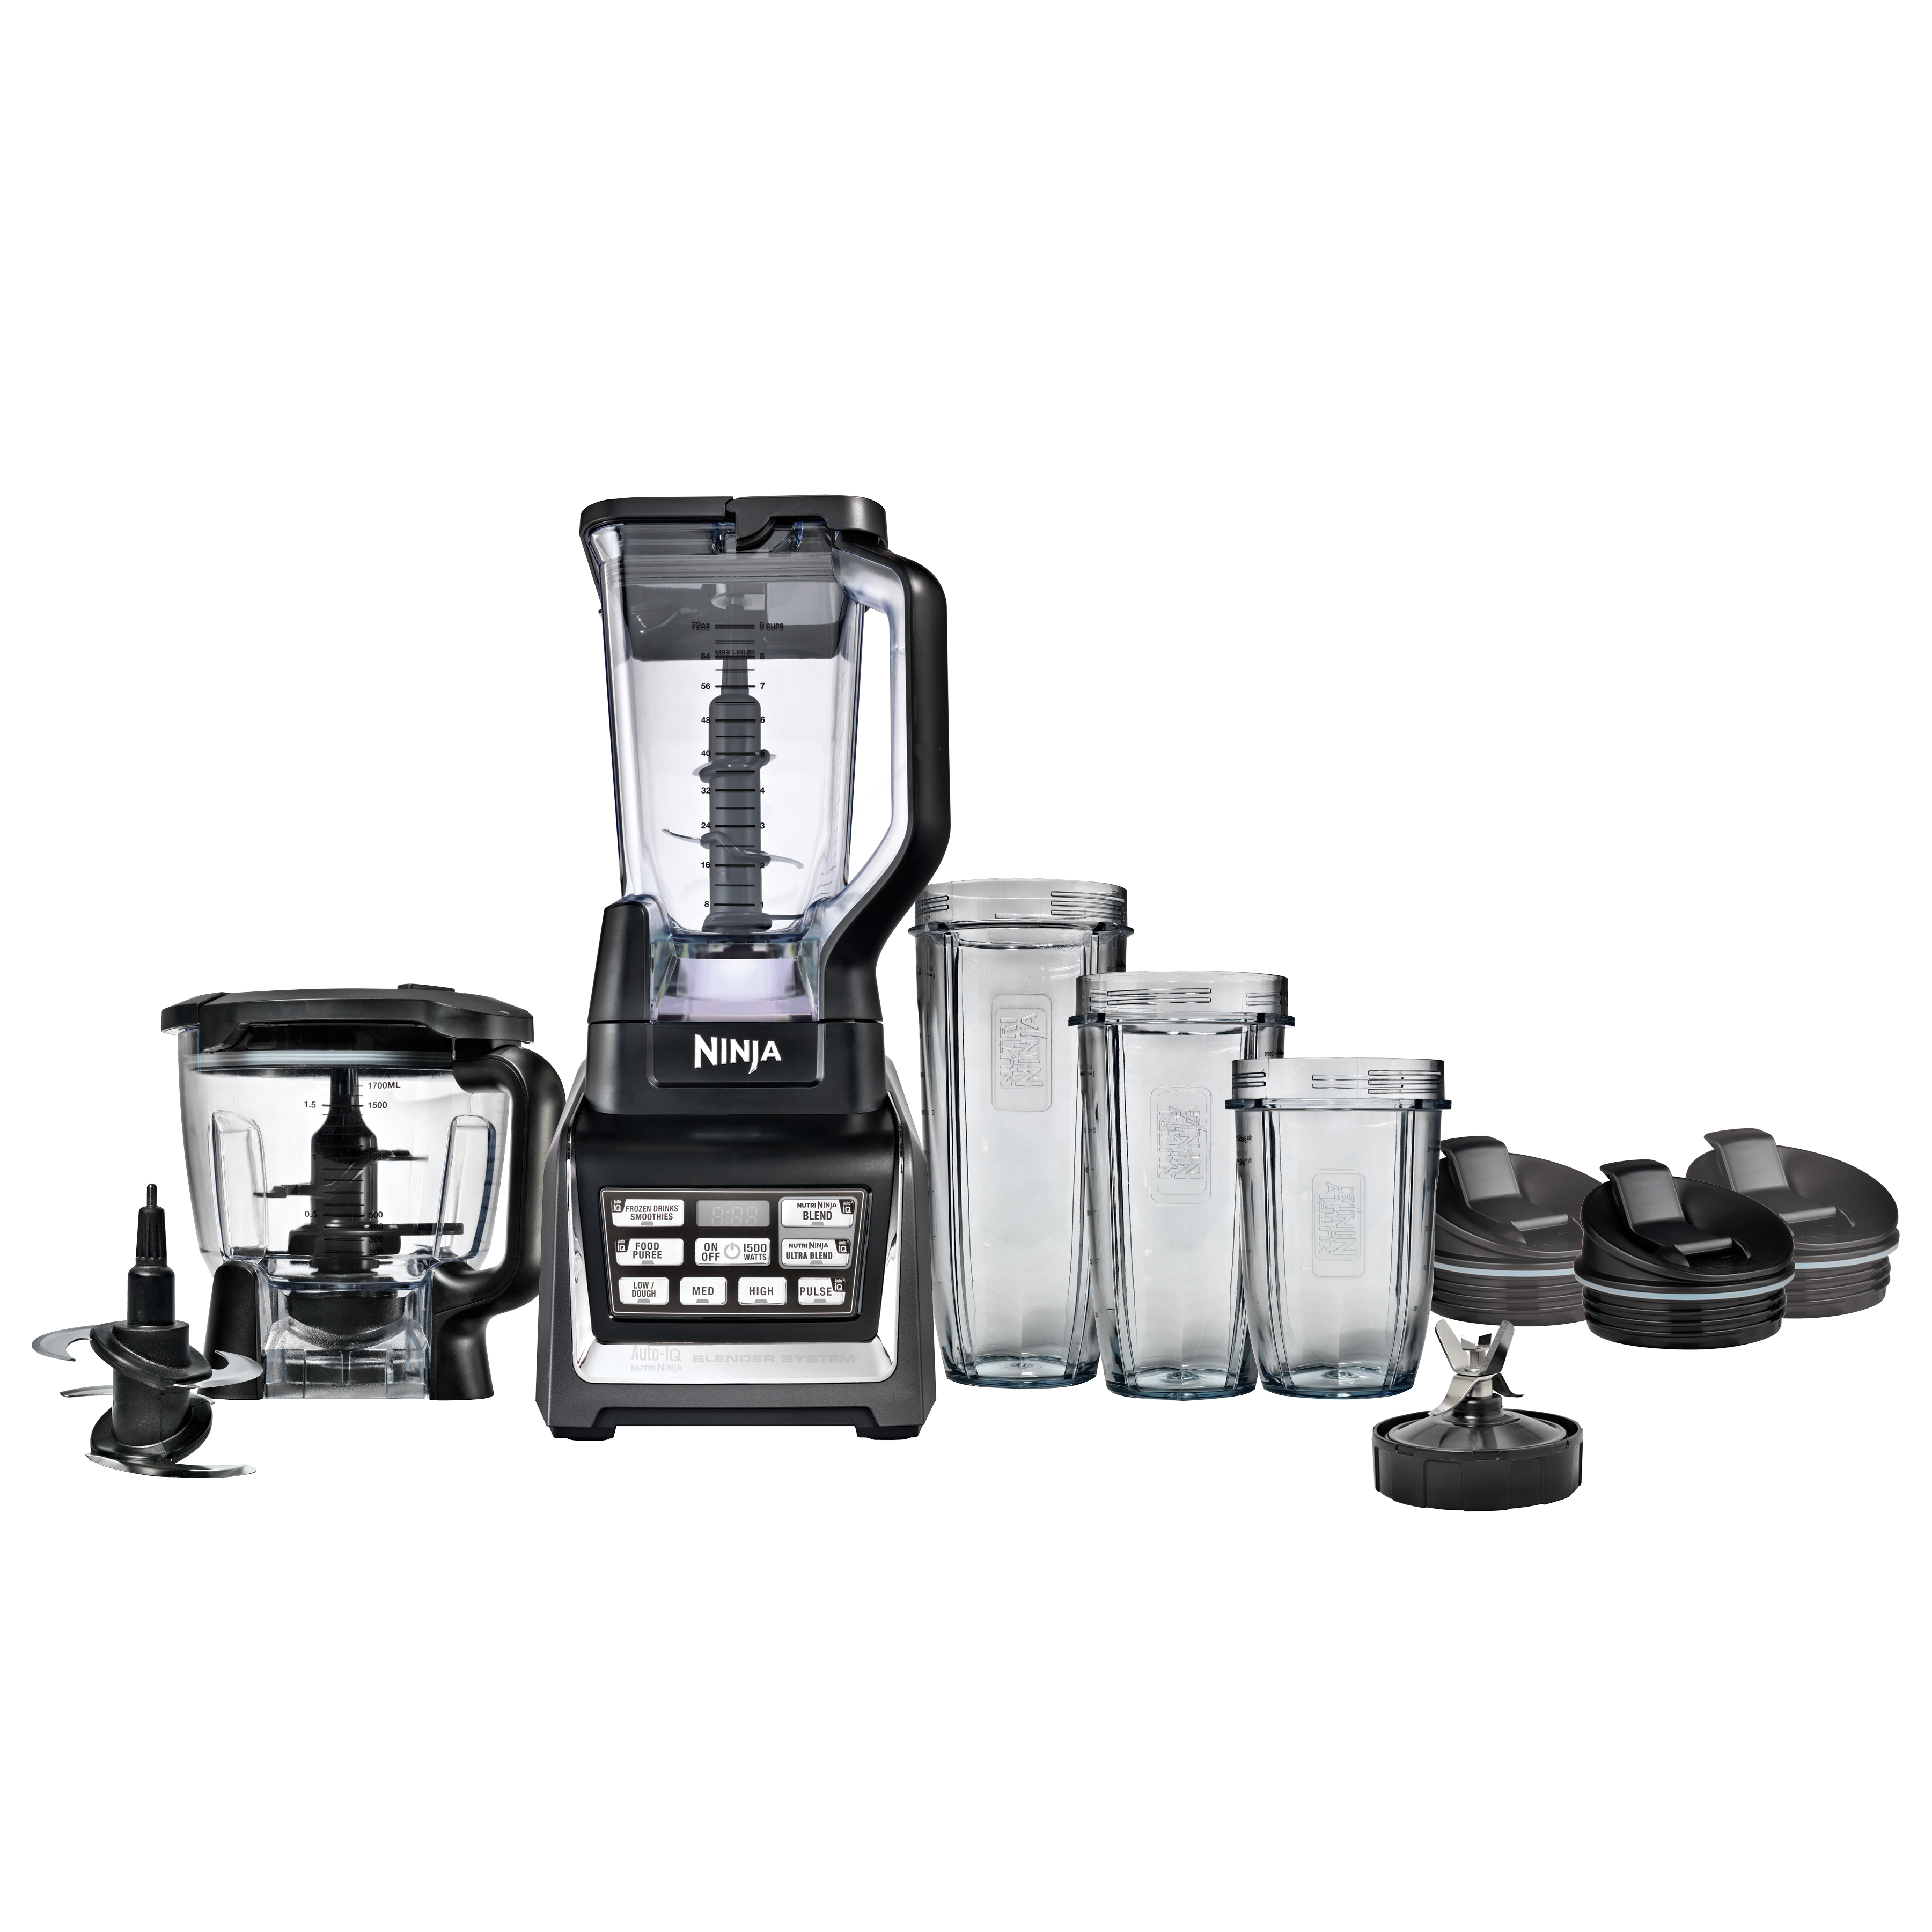 ninja kitchen com rustic chandelier nutri blender system unveils one touch intelligence for optimized performance business wire